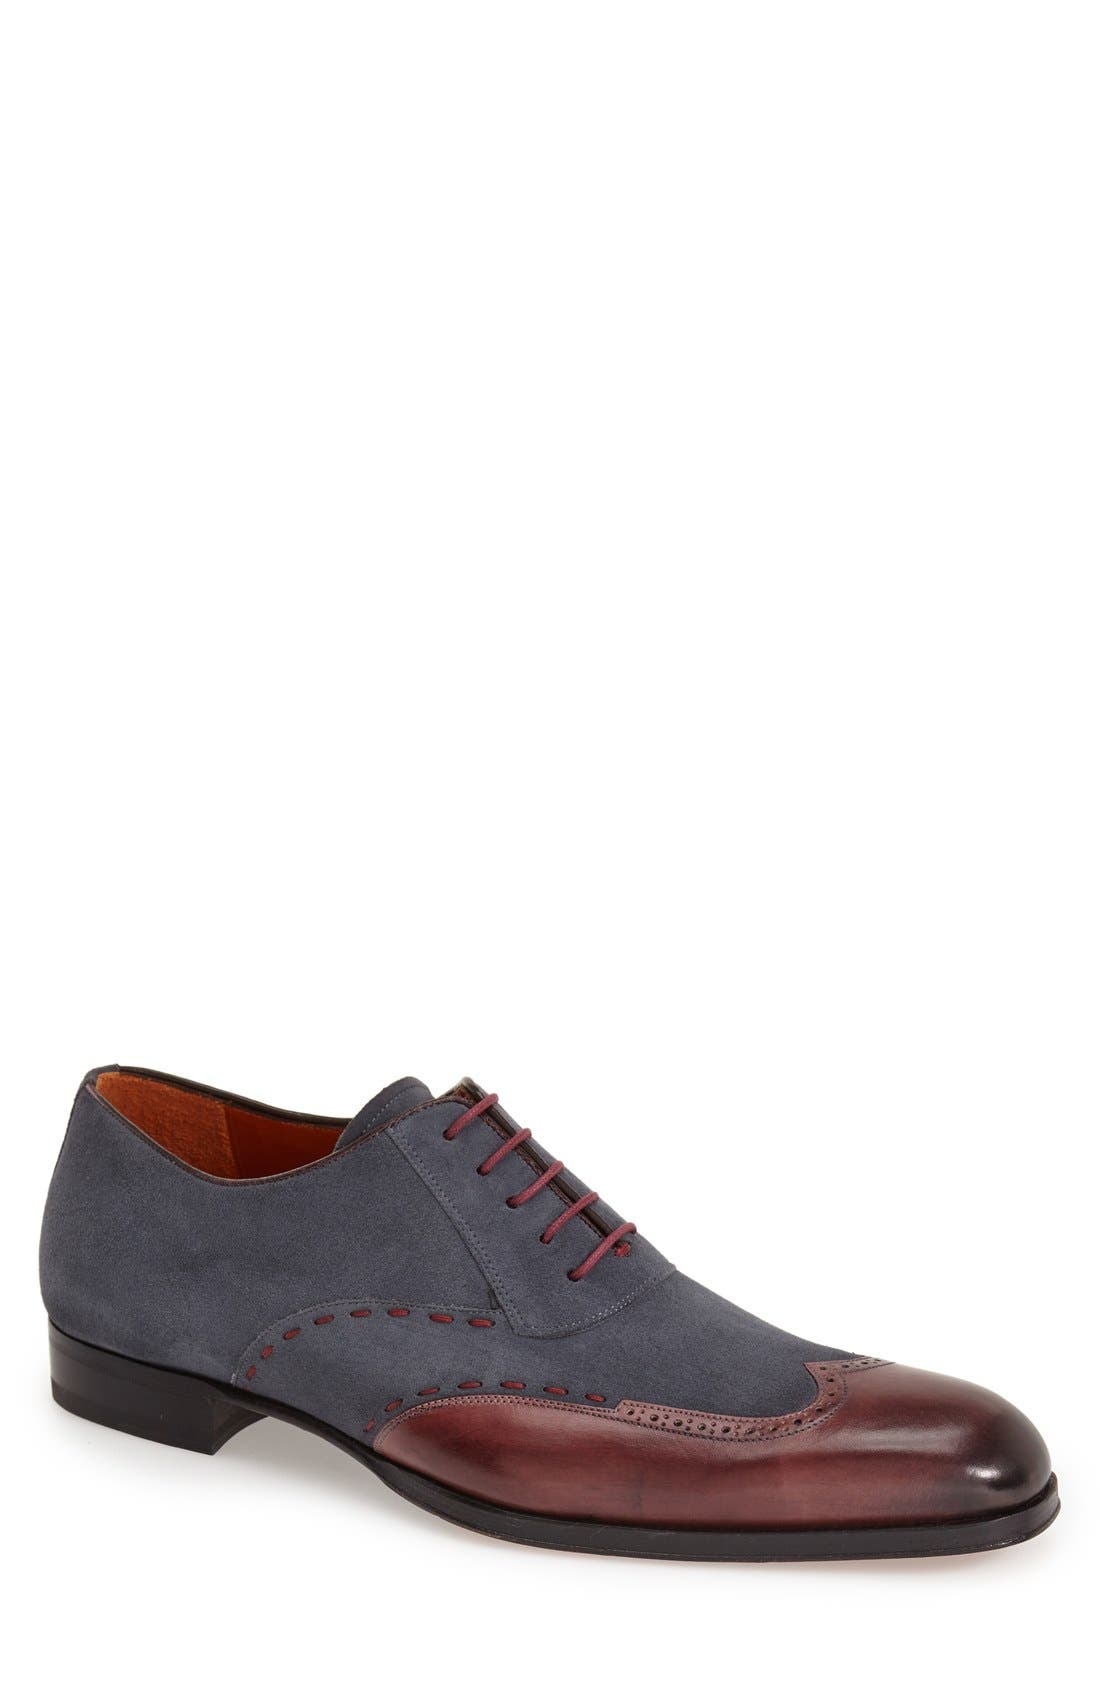 MEZLAN 'Ronda' Spectator Shoe in Burgundy/ Grey